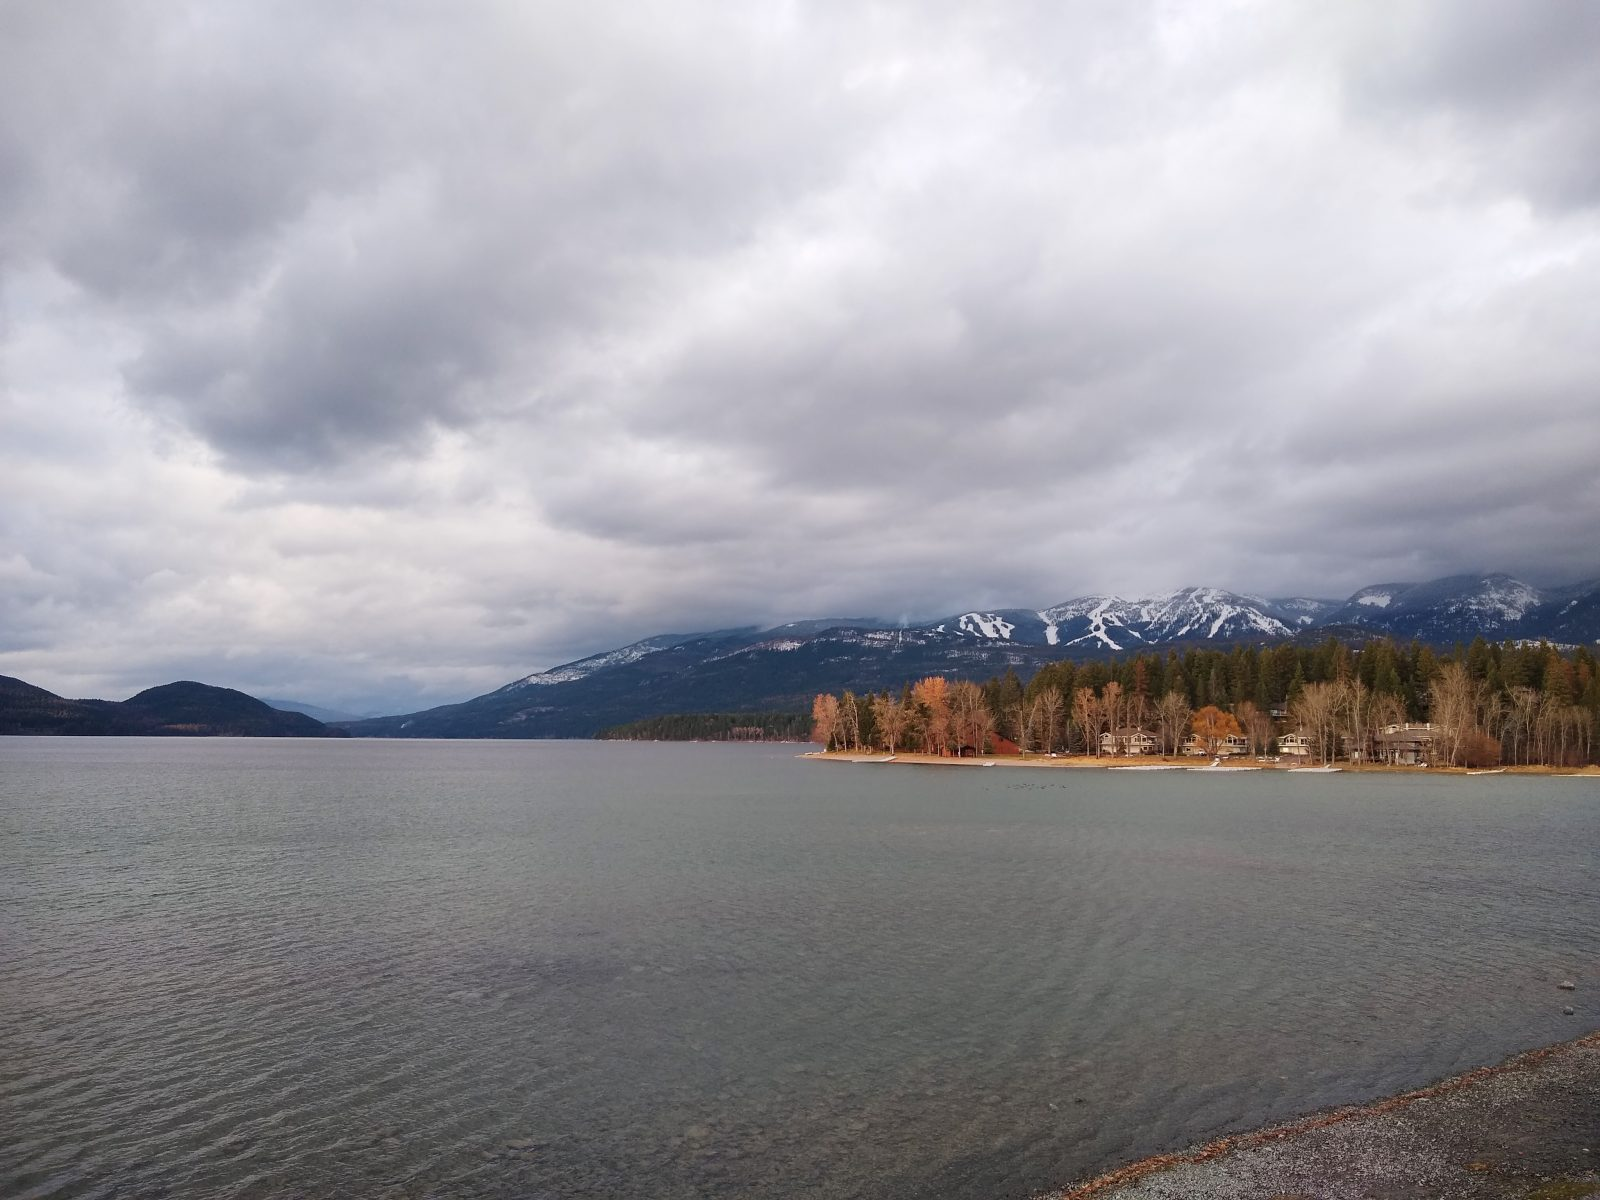 Whitefish Lake - November 20, 2020